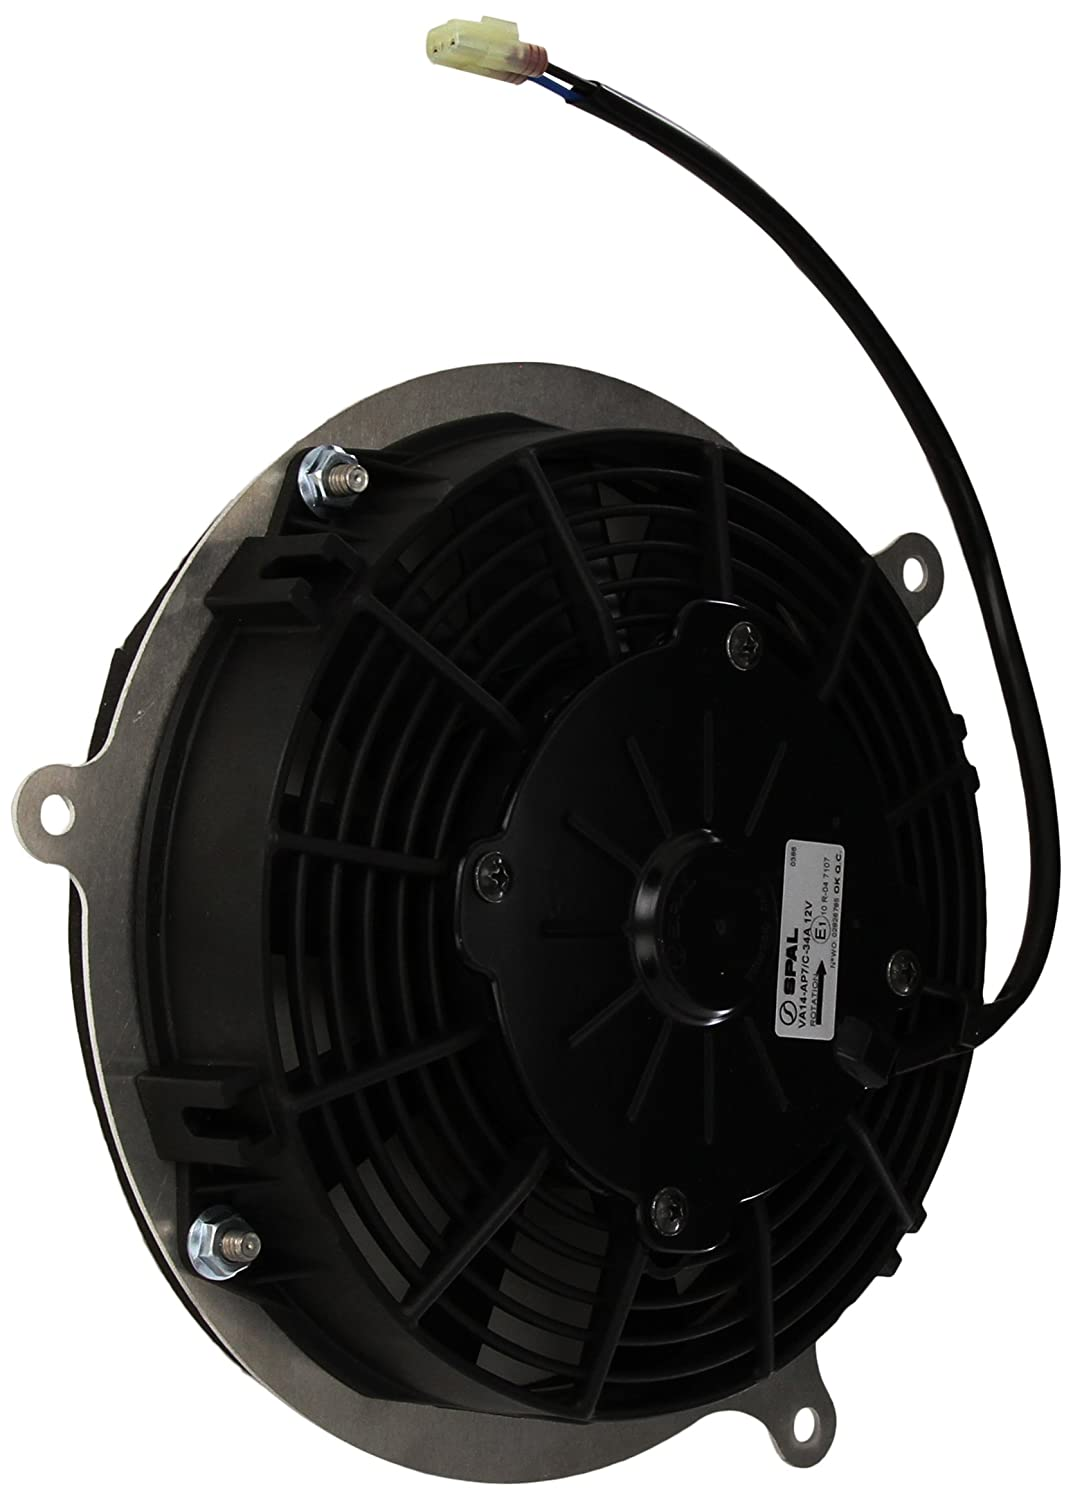 Universal Parts Z5000 Cooling Fan for Kawasaki KFX700/KFX700 V-Force